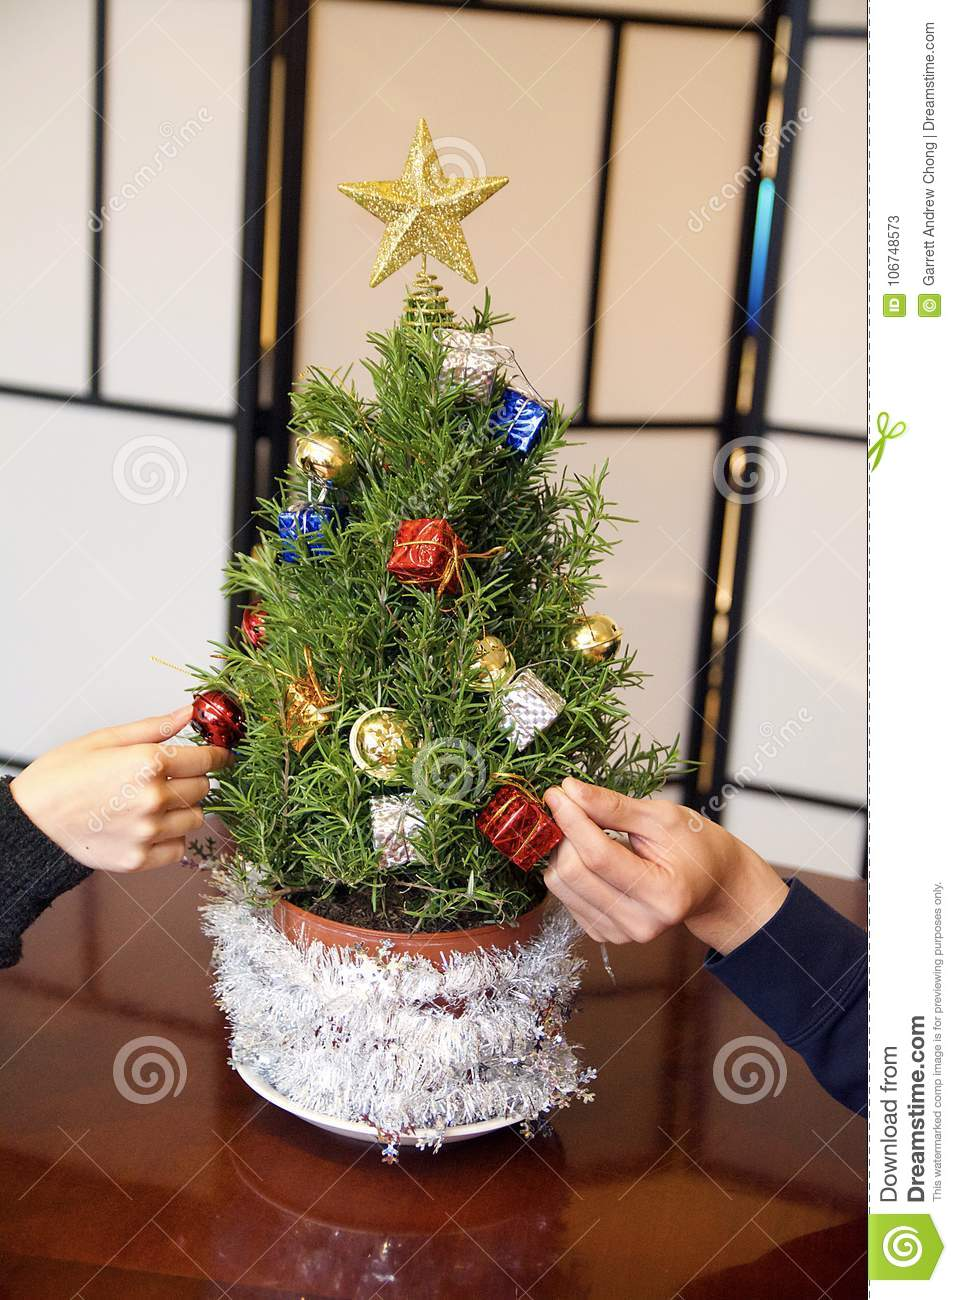 Mini Rosemary Christmas Tree Being Decorated With Gold Star